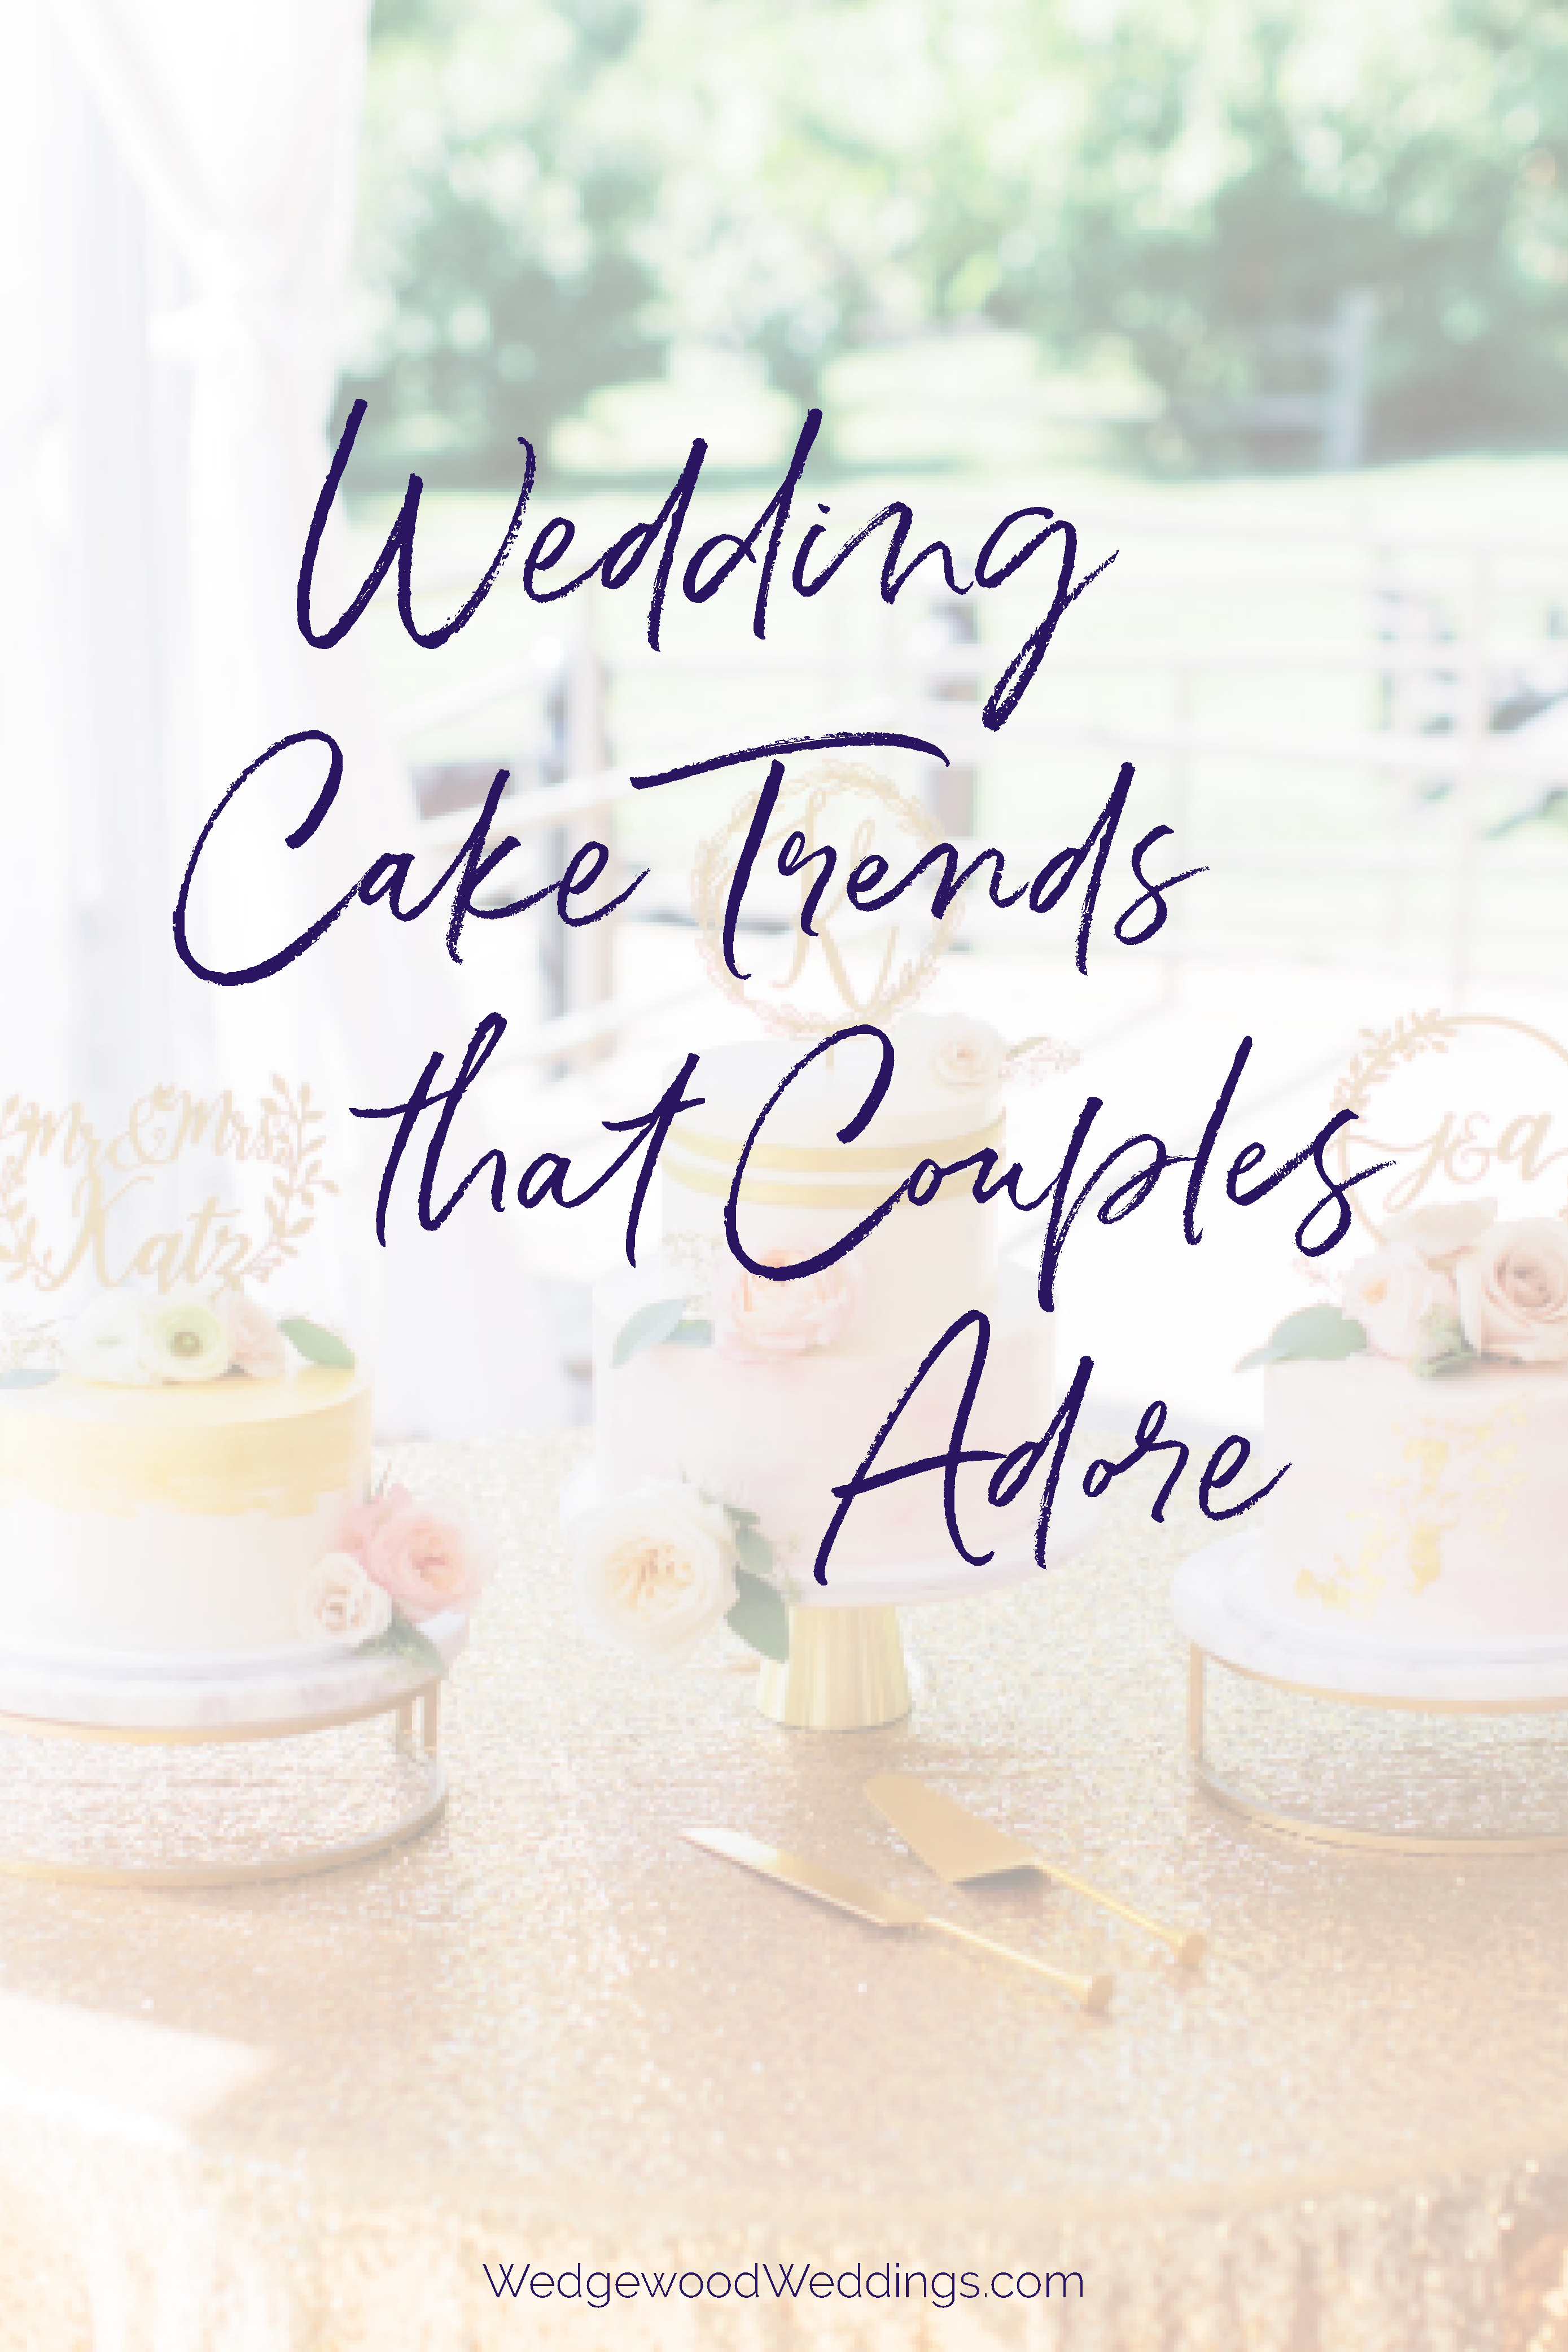 Wedding cake trends are exciting and fun. From frosting designs to various shapes to added accessories, there are a lot of elements that go into a cake's look. Fortunately, there are always a few options that will never go out of style. Refer to our guide of classic-style wedding cakes if 'tried and true' is more your vibe.